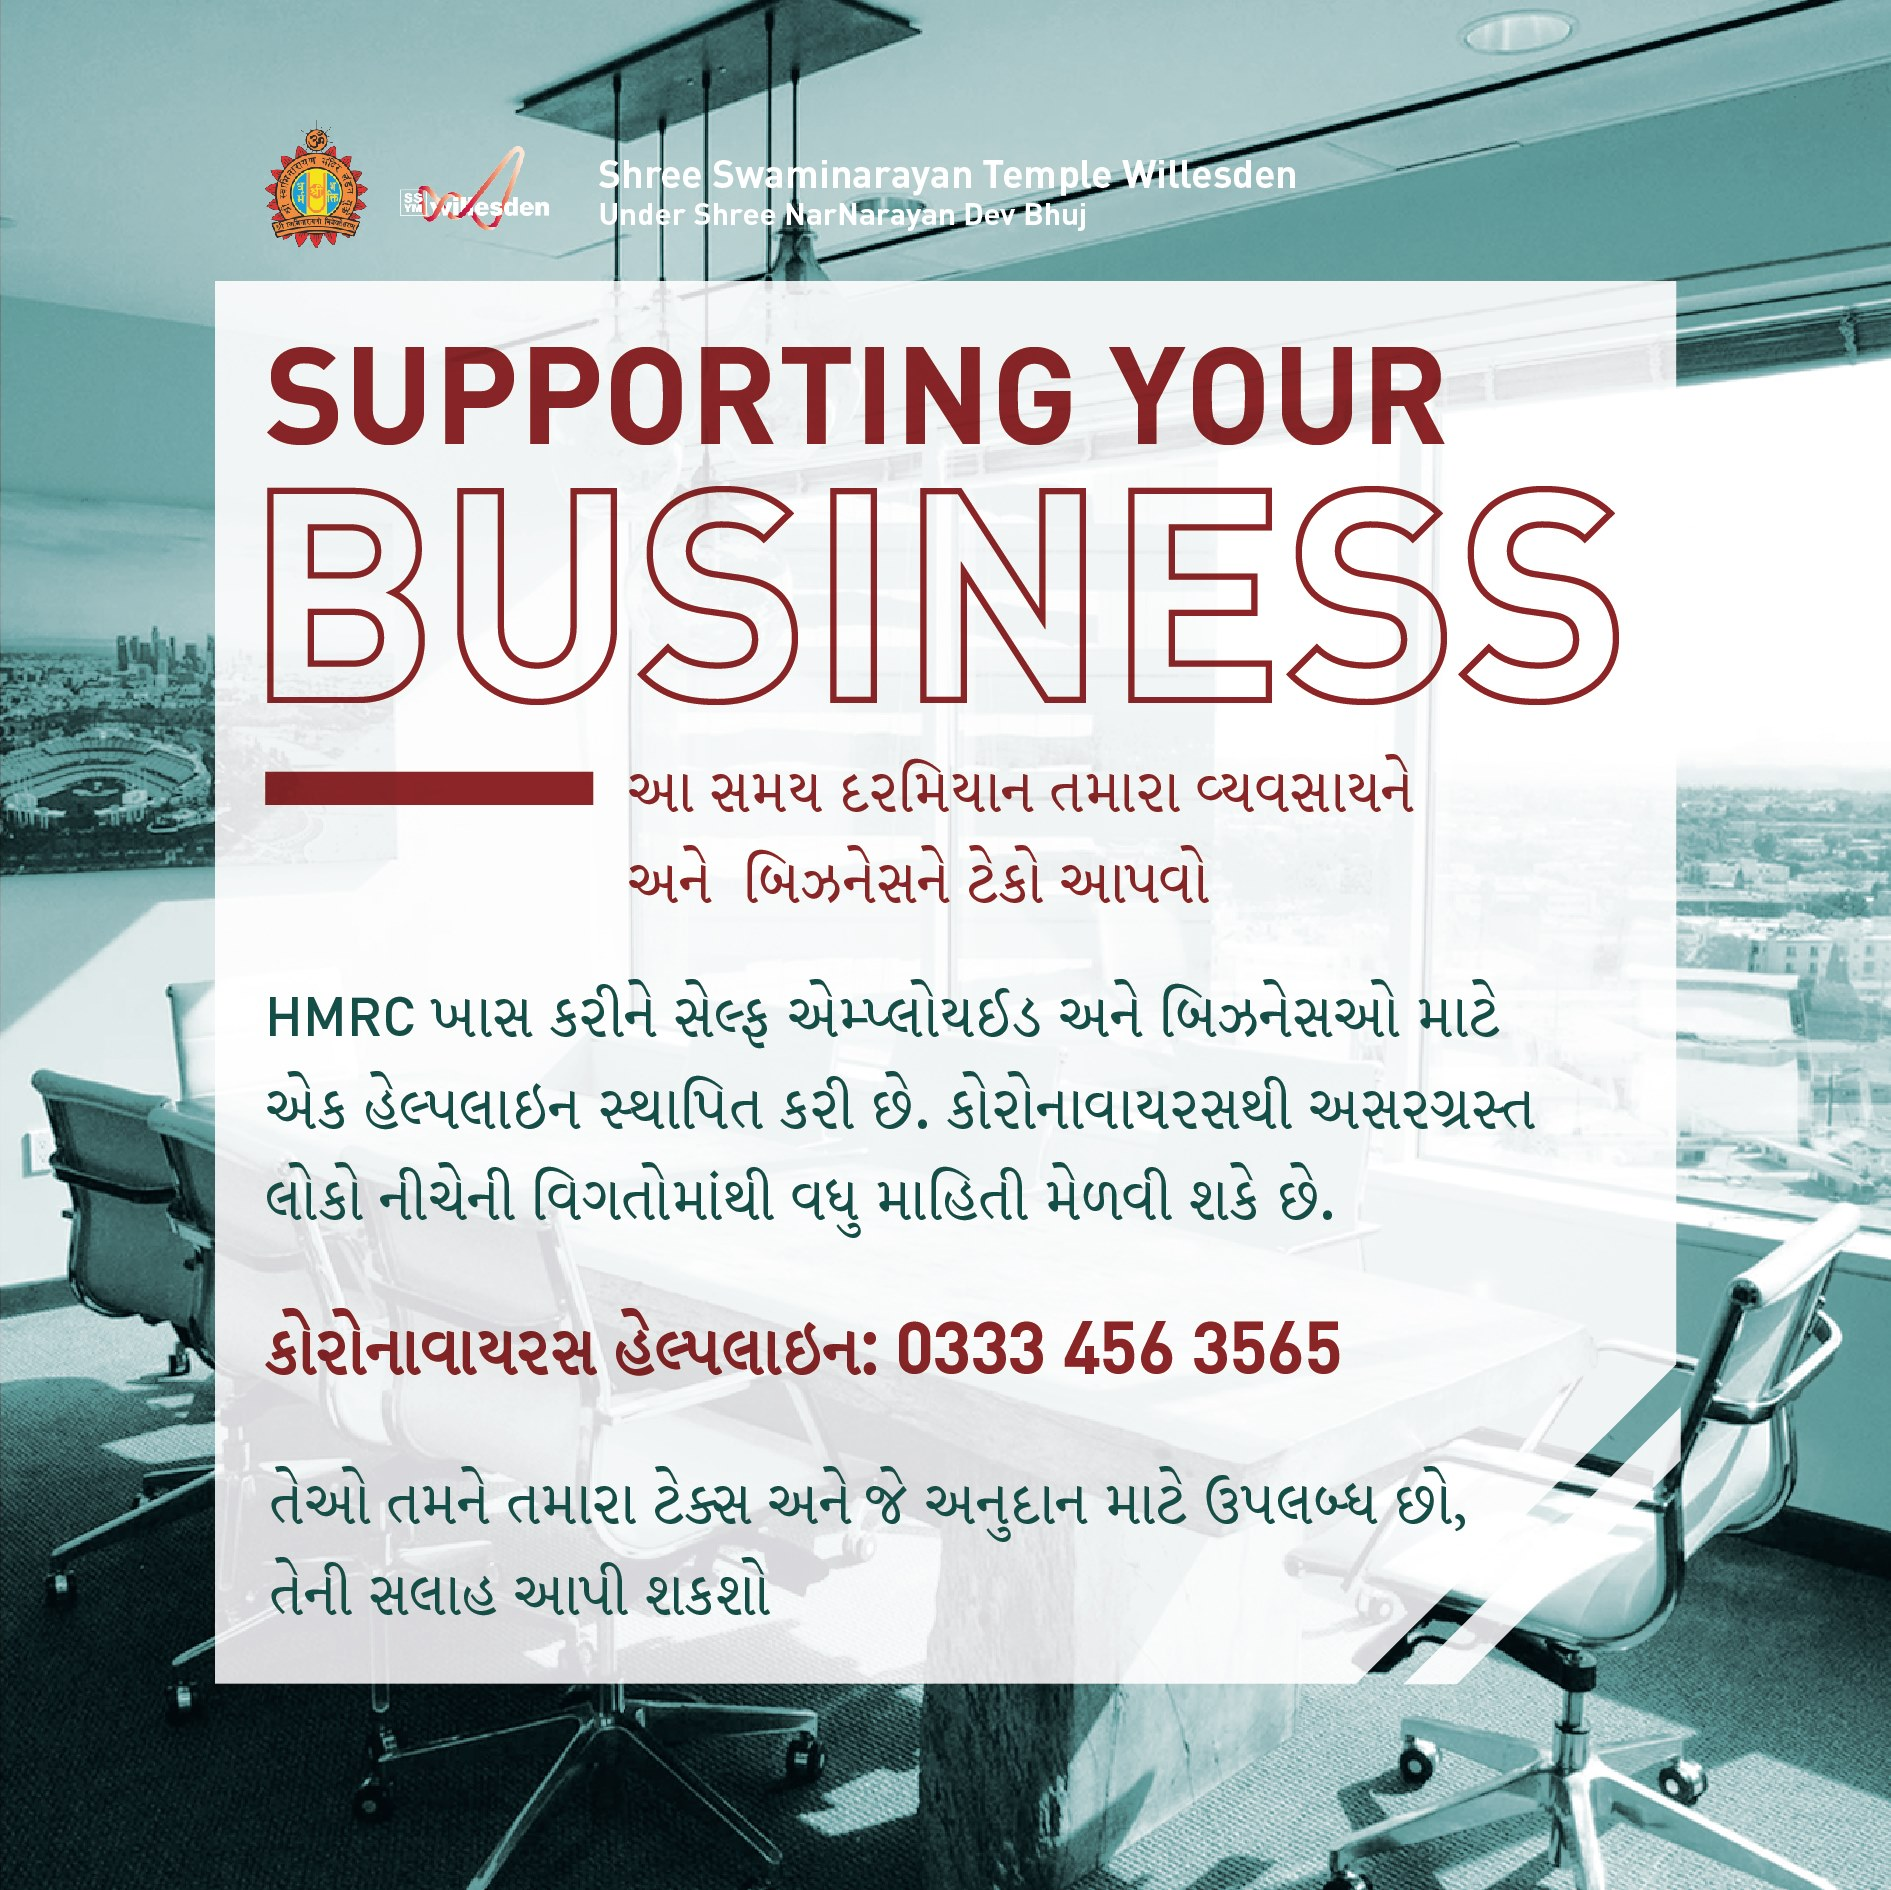 supporting business gujarati